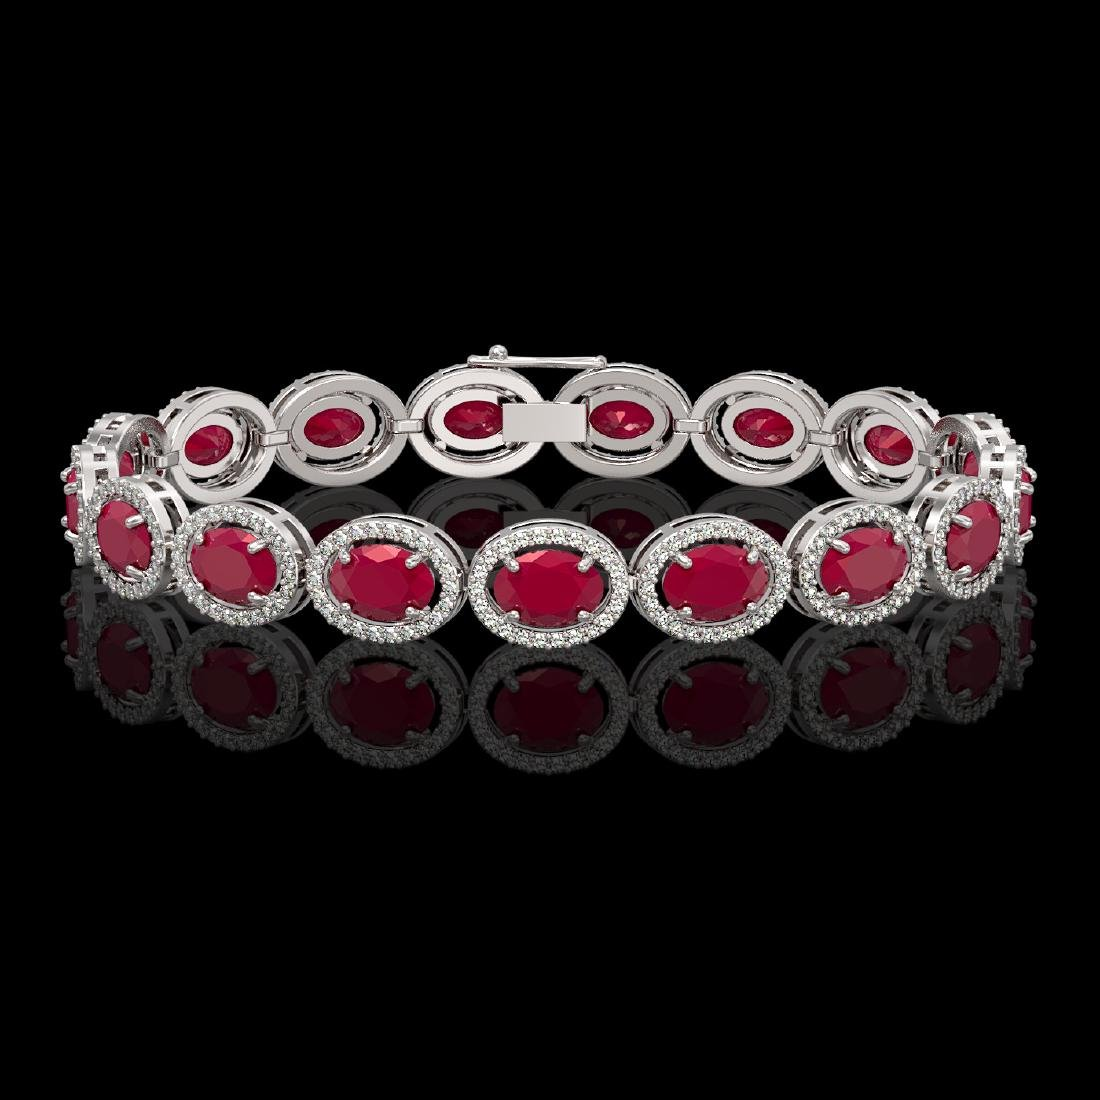 22.89 CTW Ruby & Diamond Halo Bracelet 10K White Gold